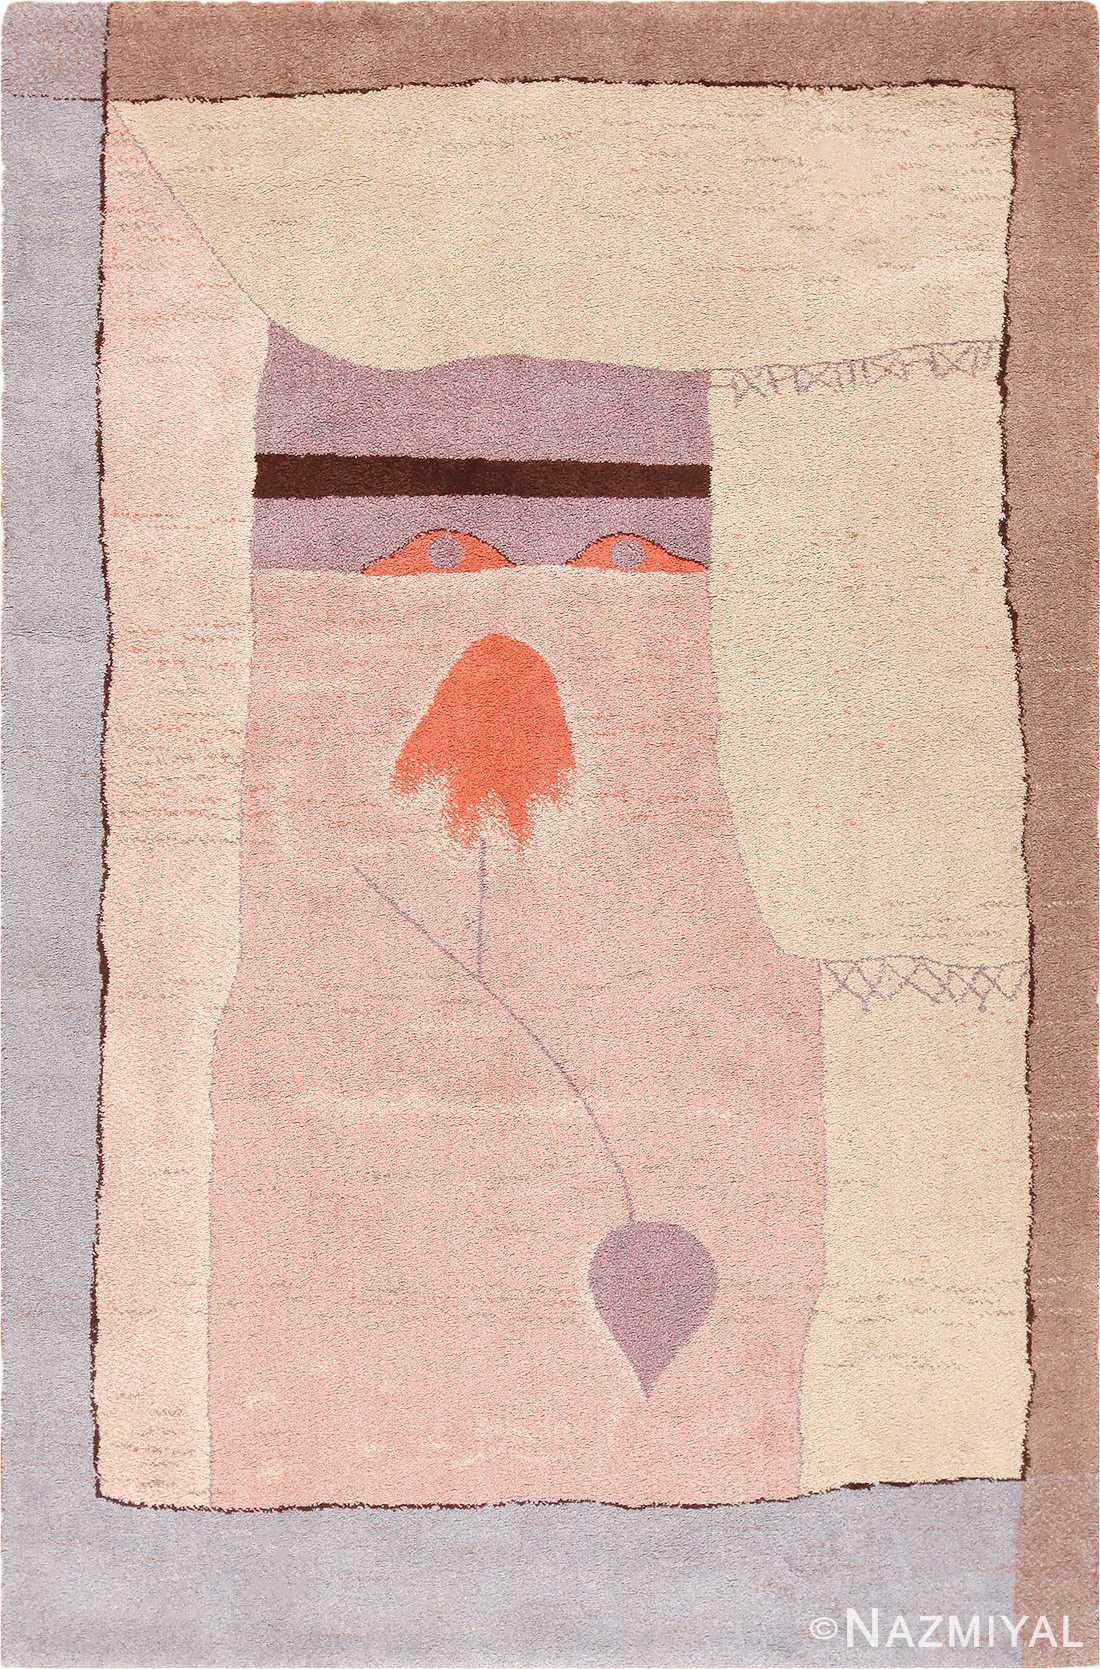 Vintage Scandinavian Ege Art Line Paul Klee Arab Song Rug #49997 from Nazmiyal Antique Rugs in NYC